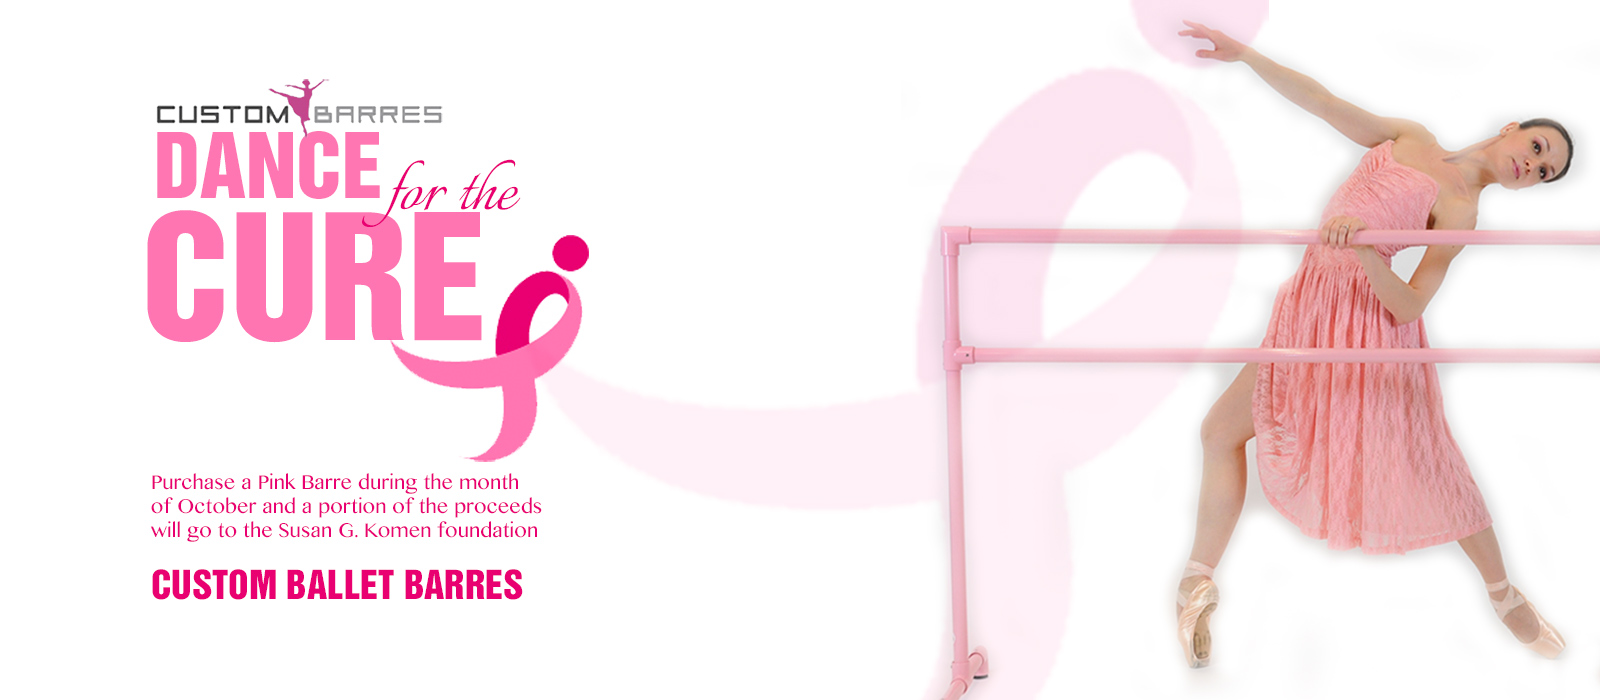 custom barres supports  the fight against breast cancer